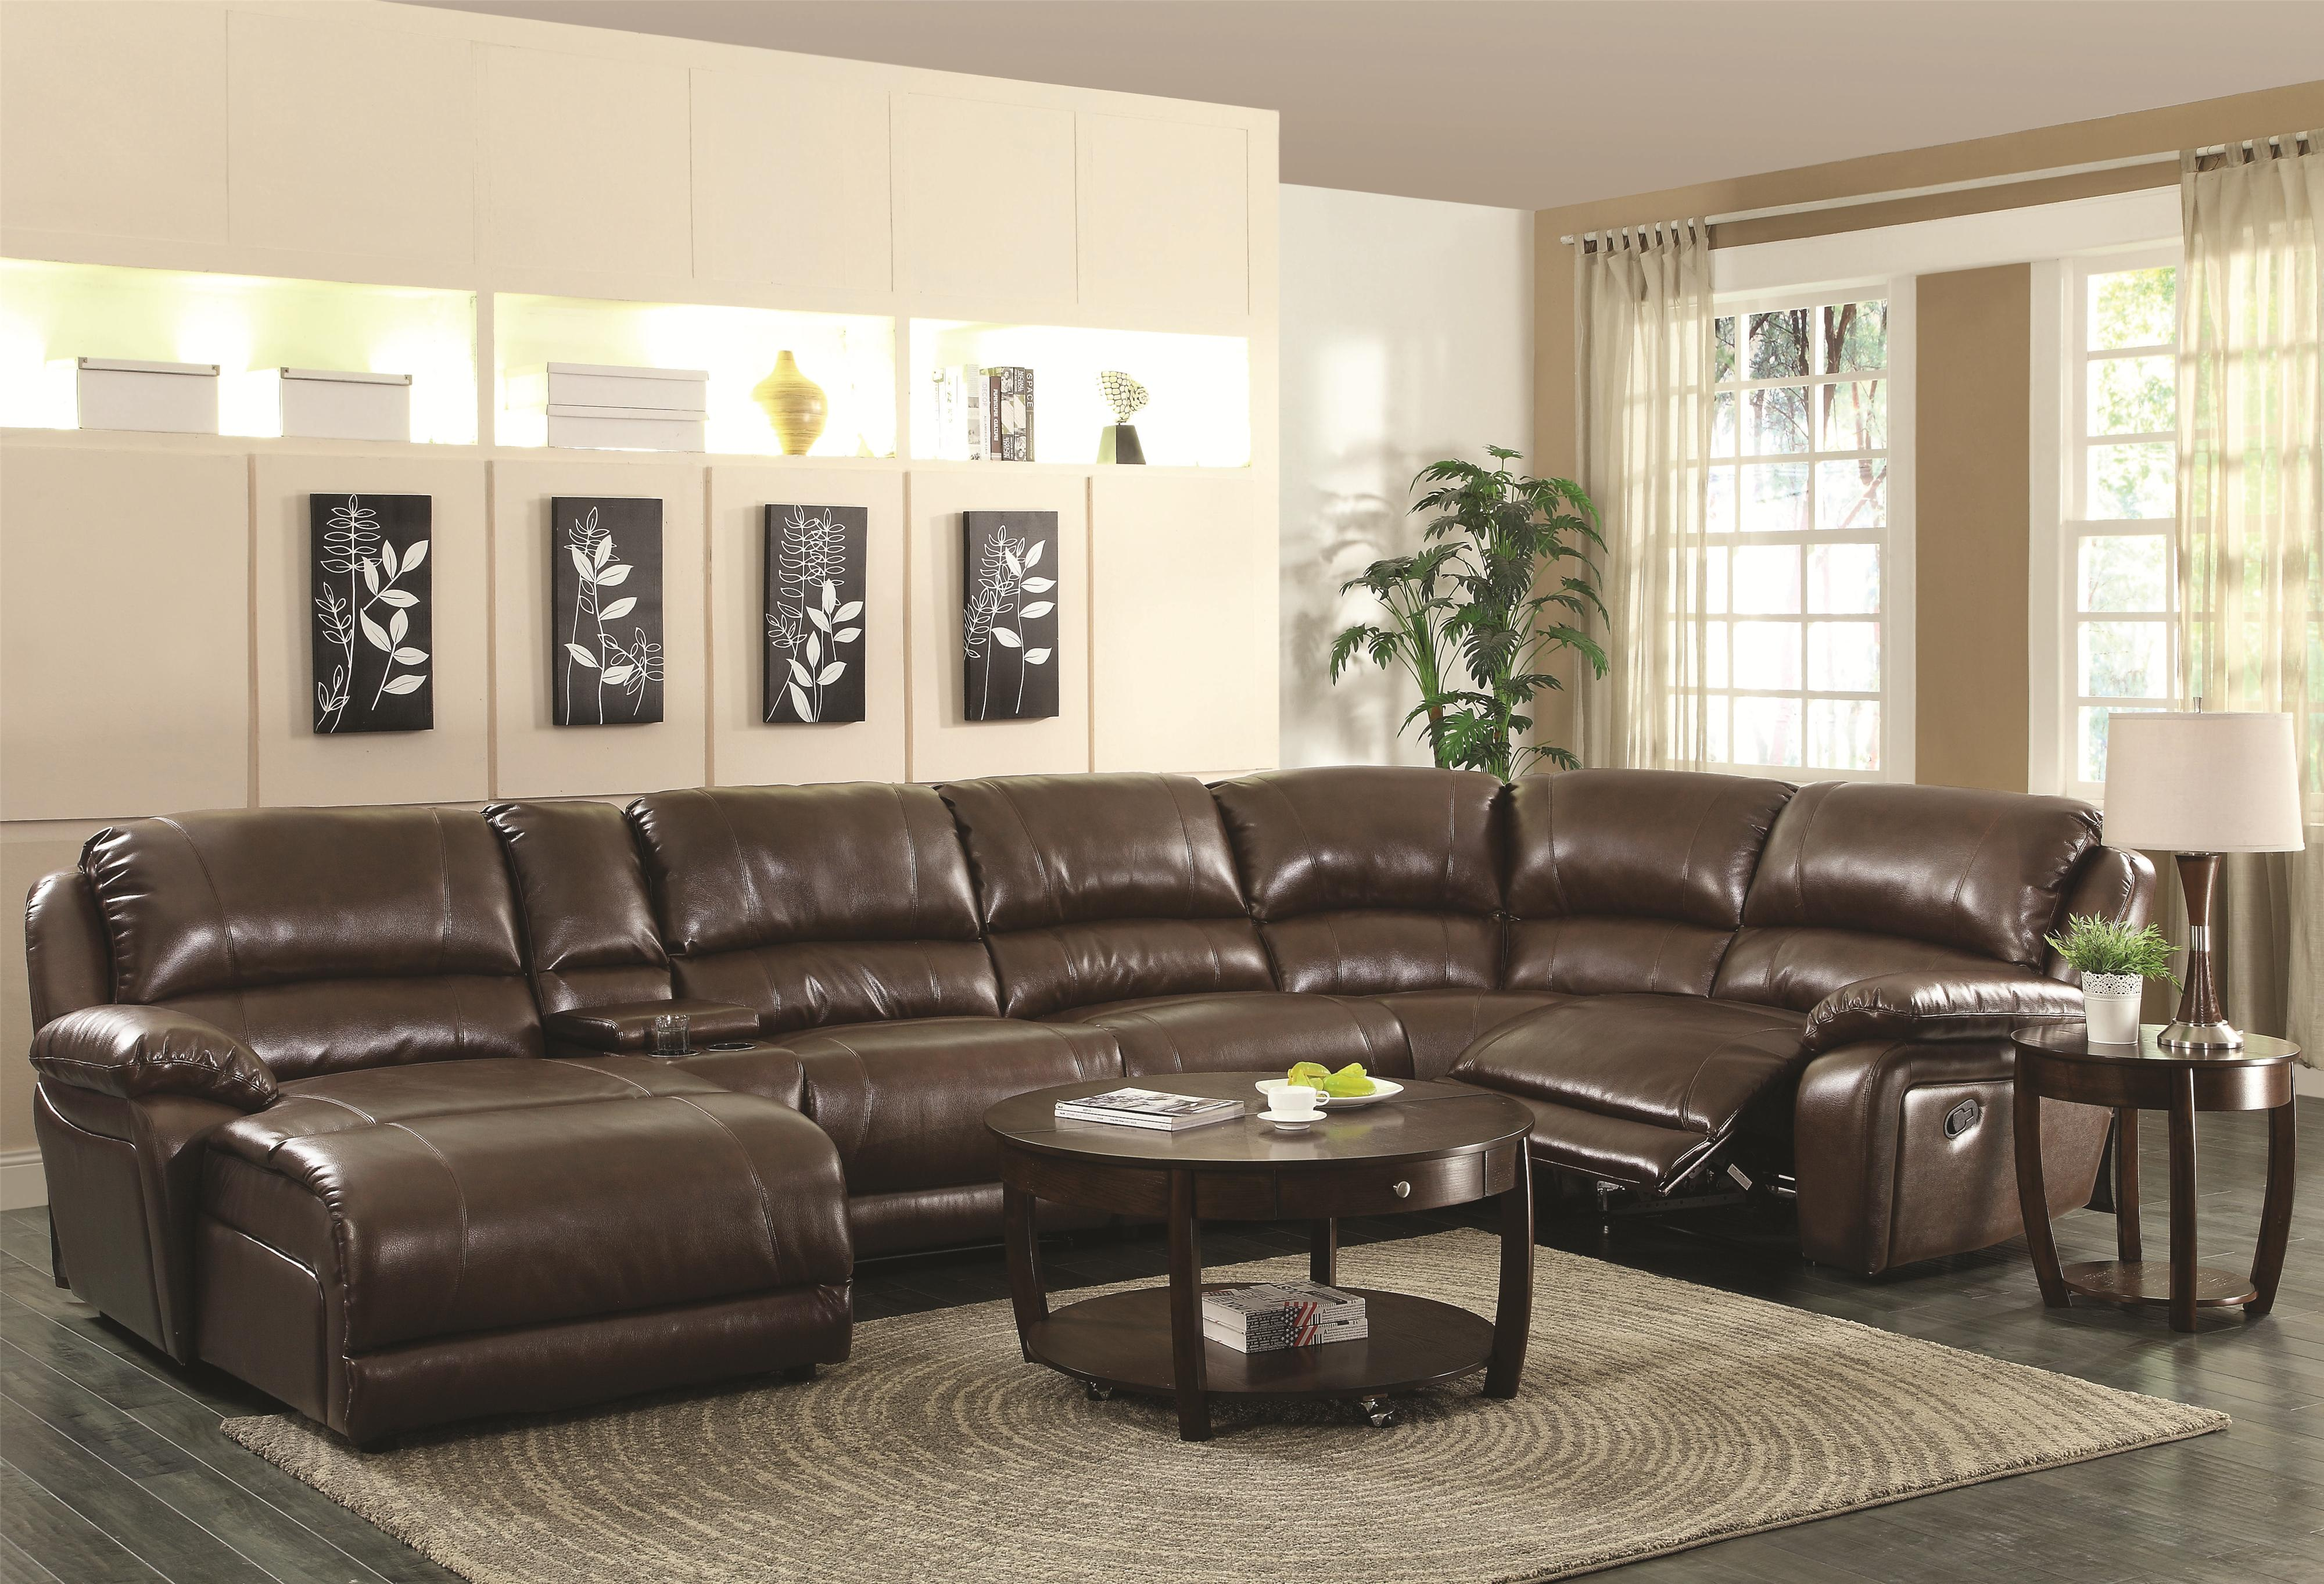 Mackenzie Silver 6 Piece Reclining Sectional Sofa with Casual